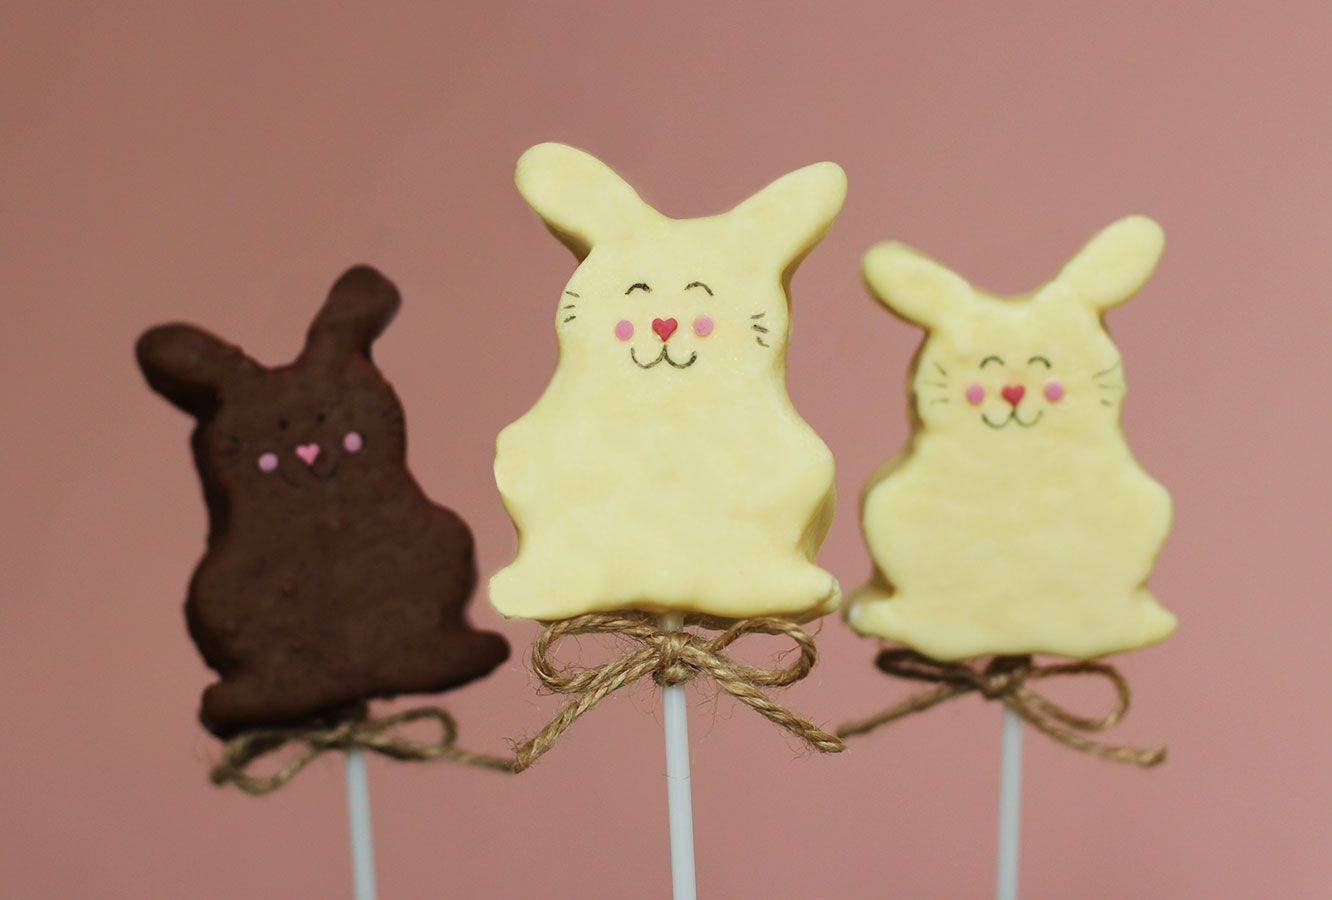 Very cute and very yummy caramel marshmallow bunny pops perfect very cute and very yummy caramel marshmallow bunny pops perfect little easter giftsfavours negle Choice Image